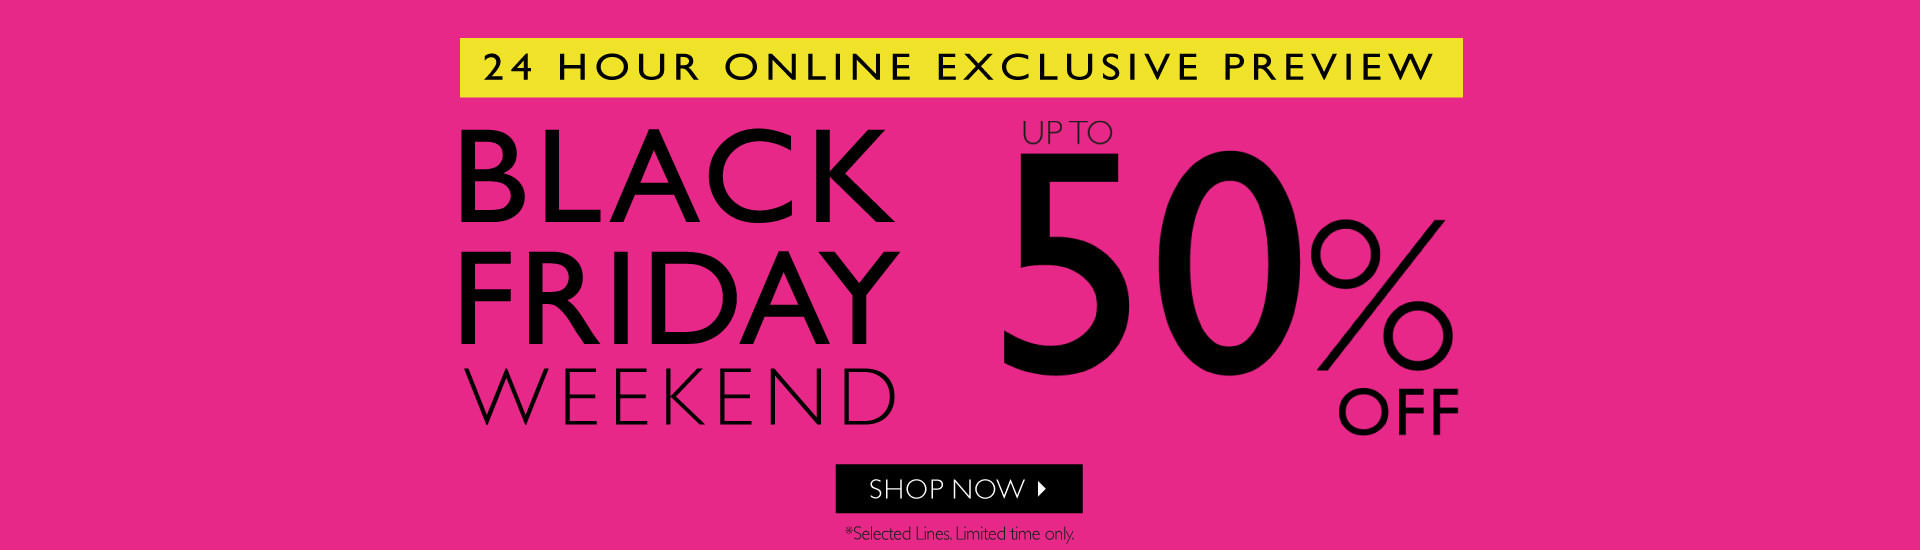 Black Friday Apricot: up to 50% off